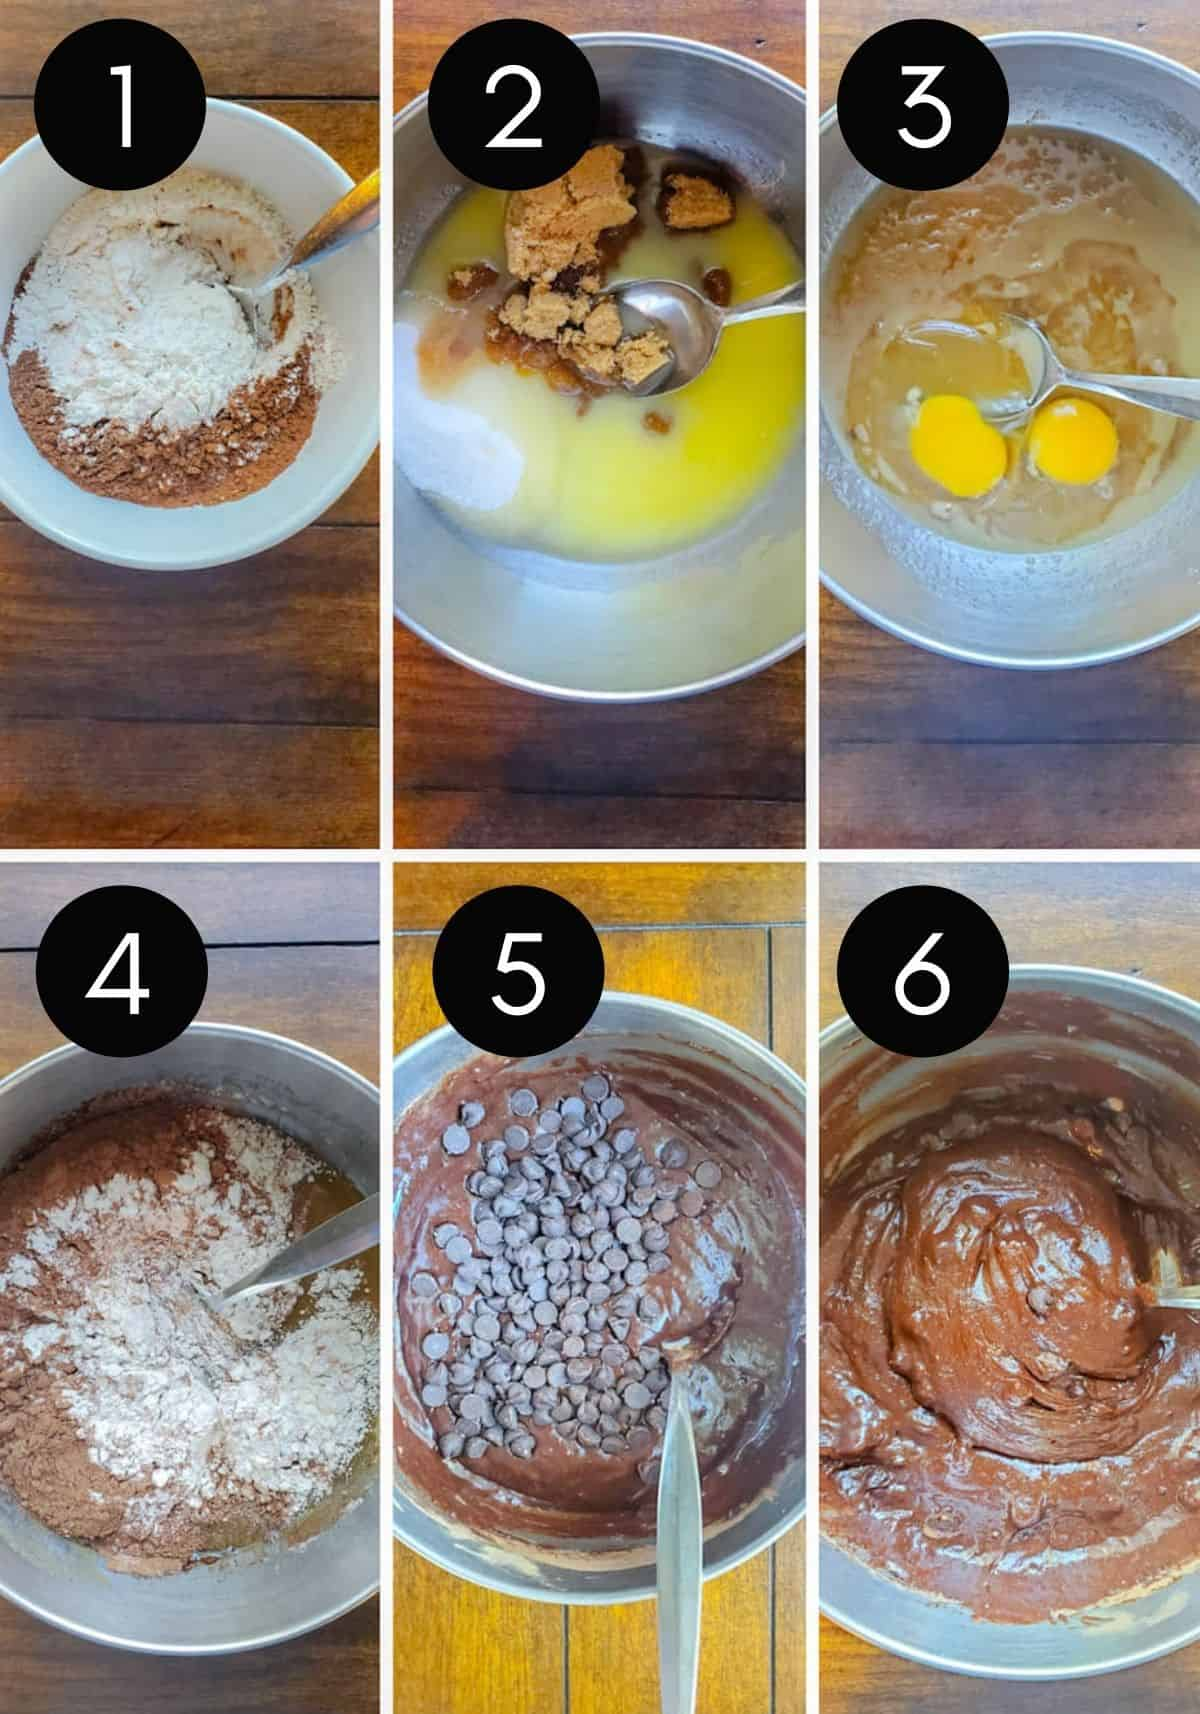 Prep images showing brownies being made with numbered pictures.